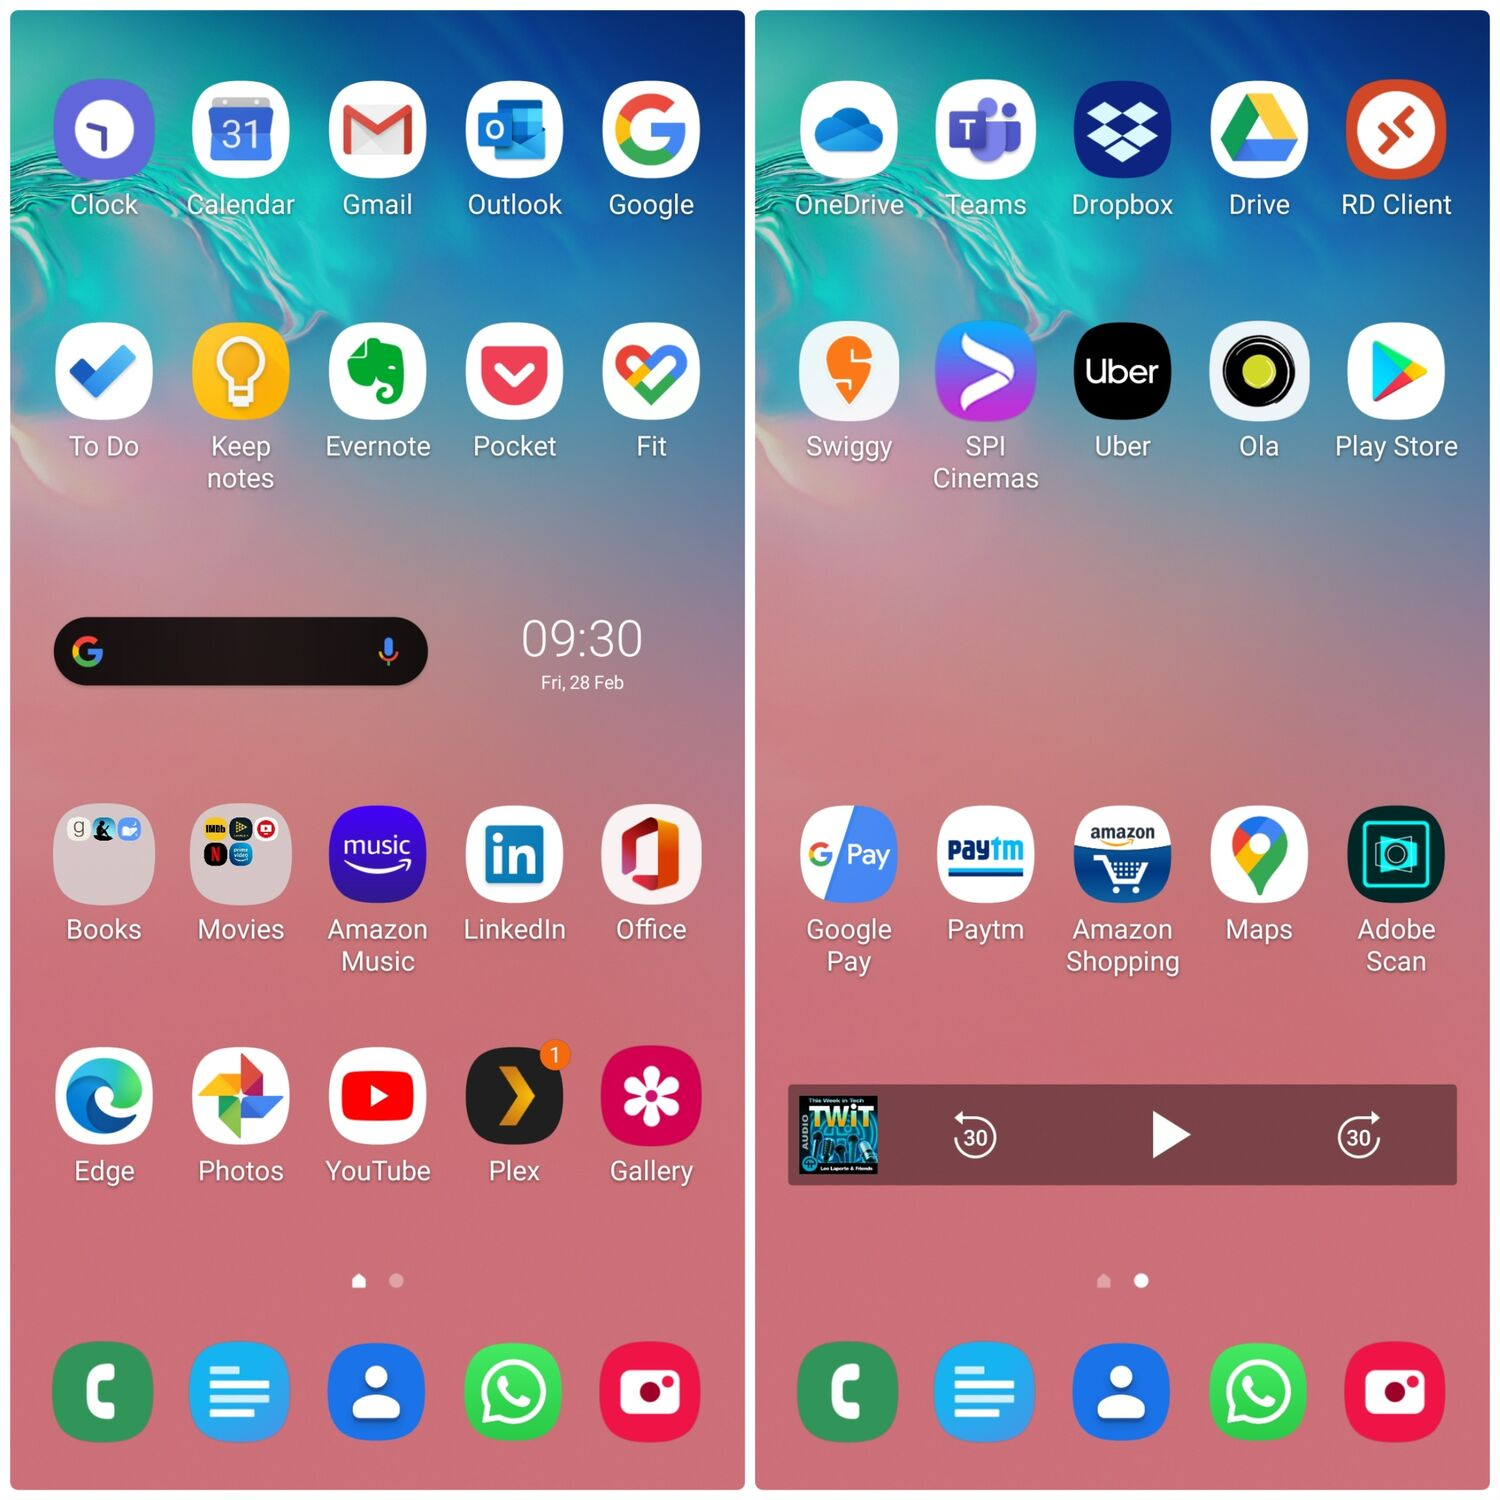 Apps that I have installed in the home screen - Samsung Galaxy S10 Lite